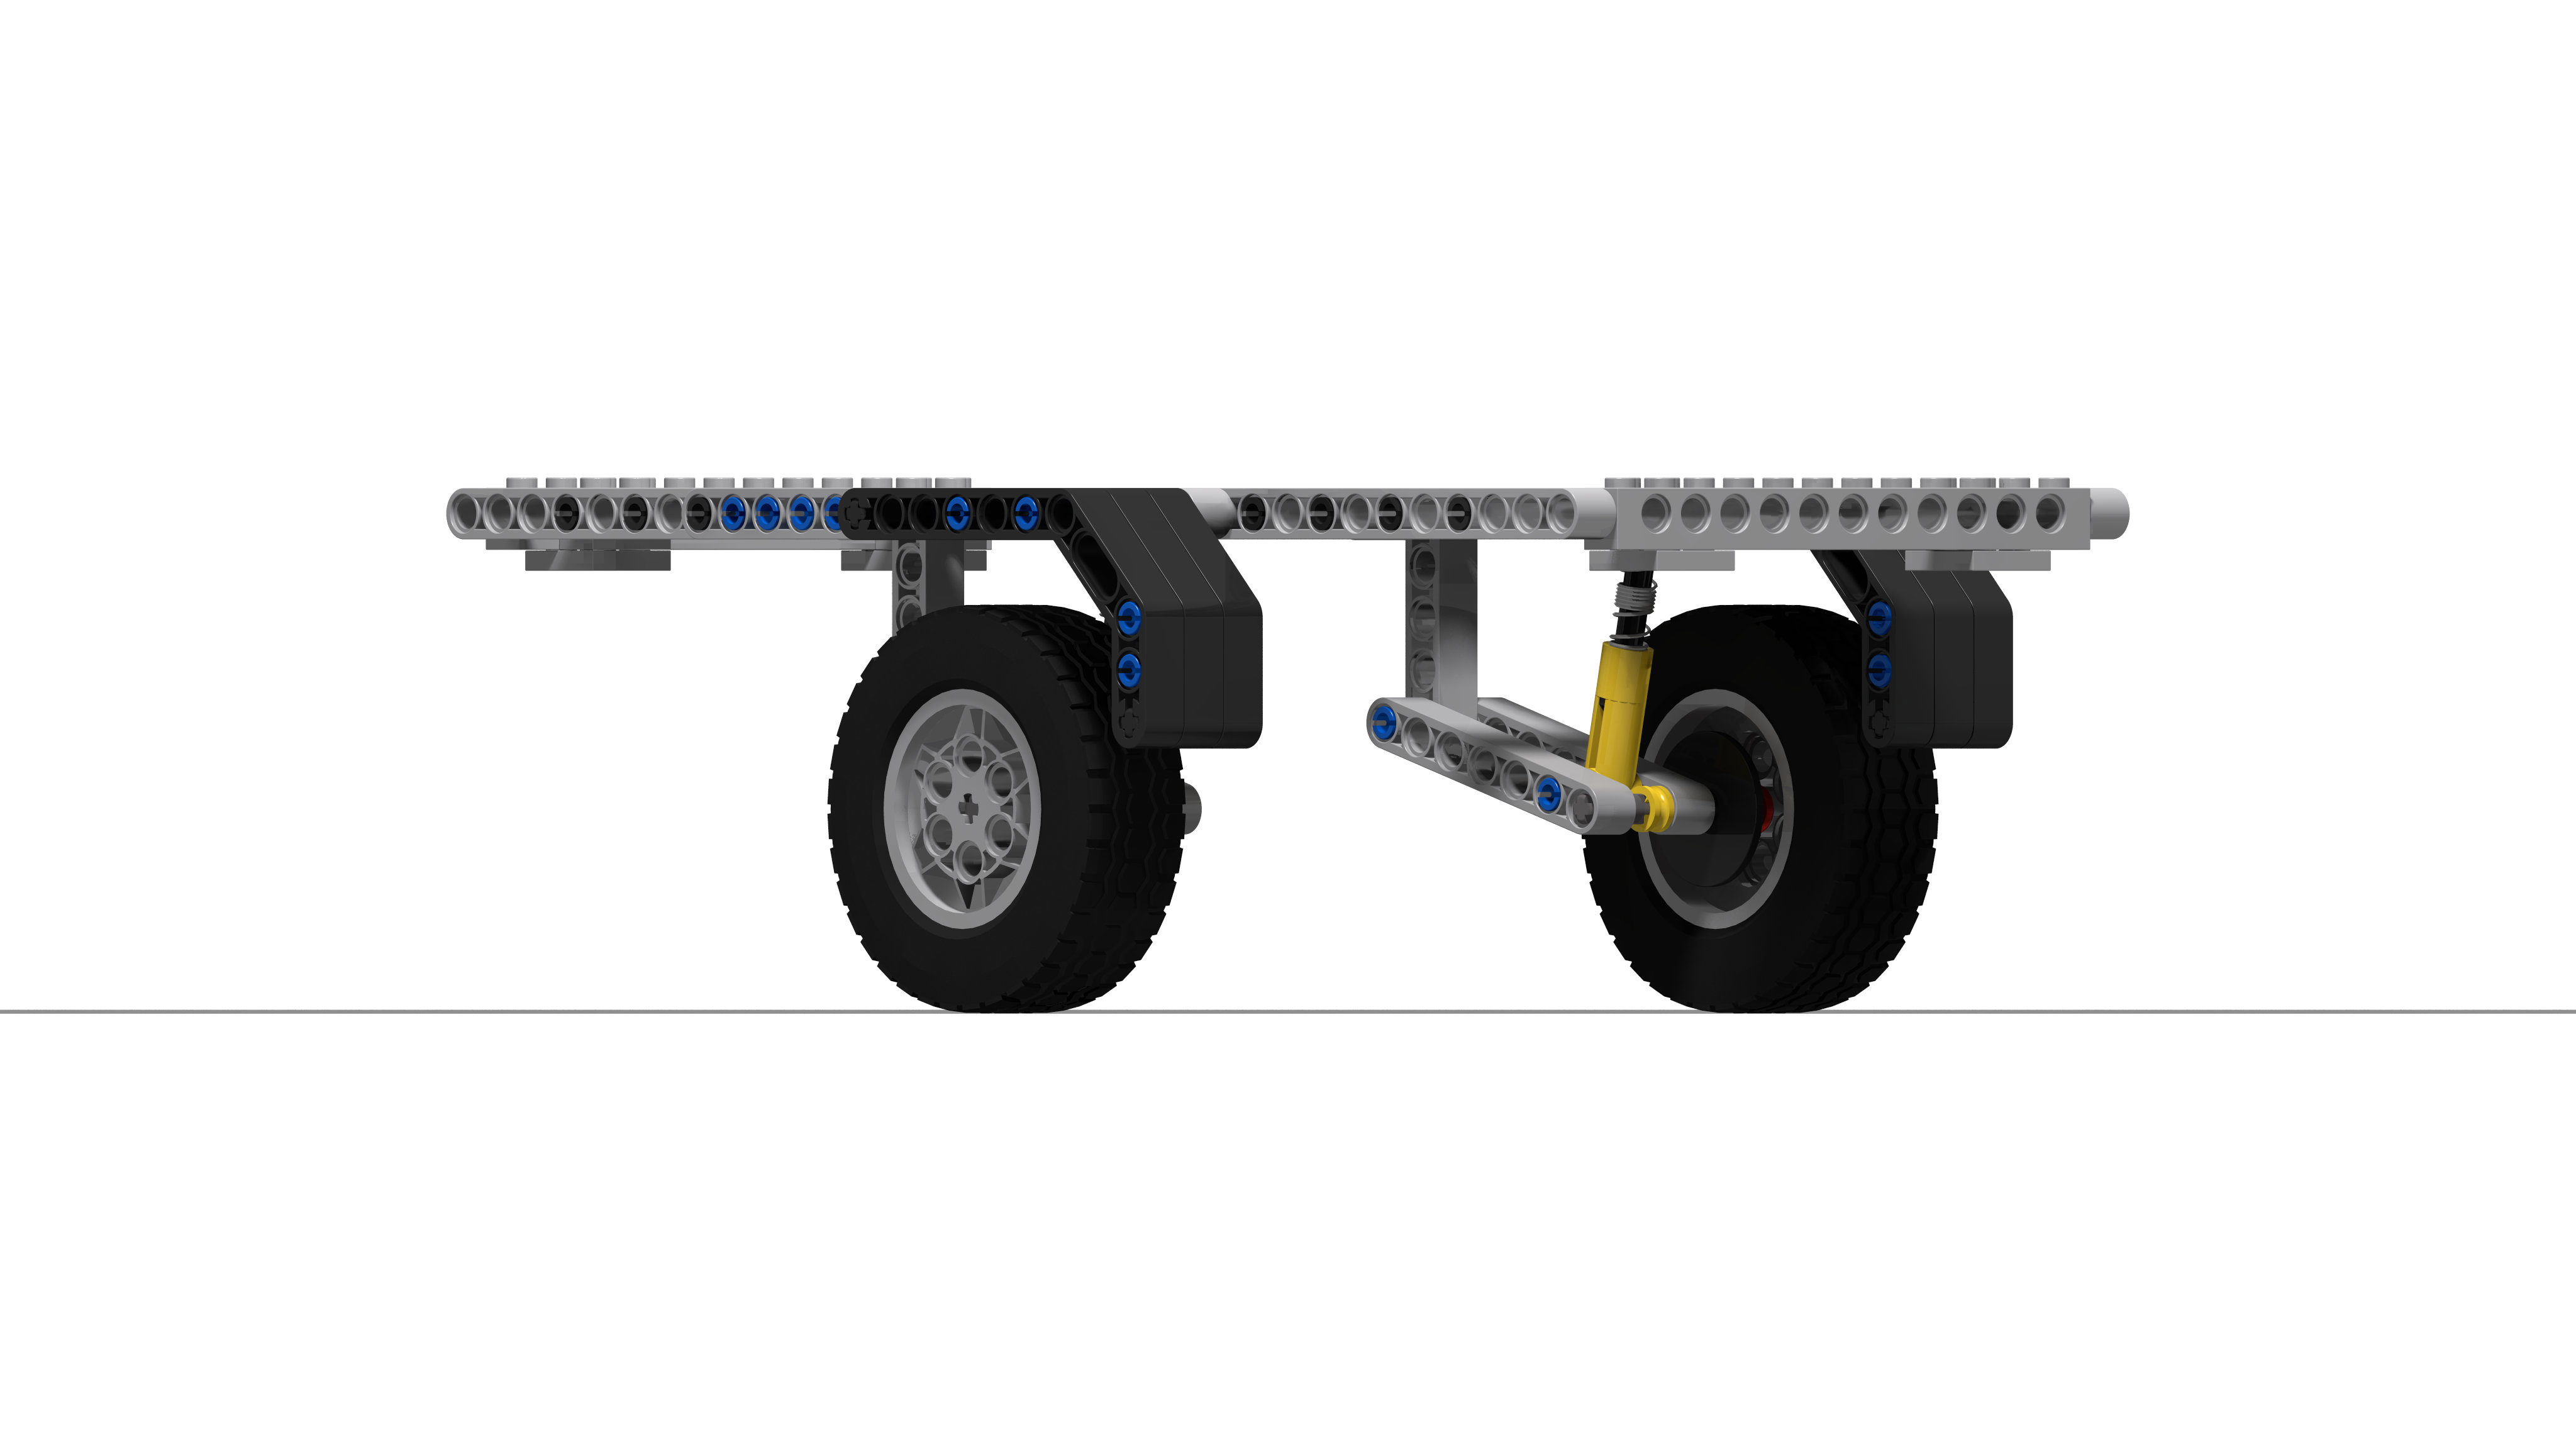 trailer_chassis_8.jpg